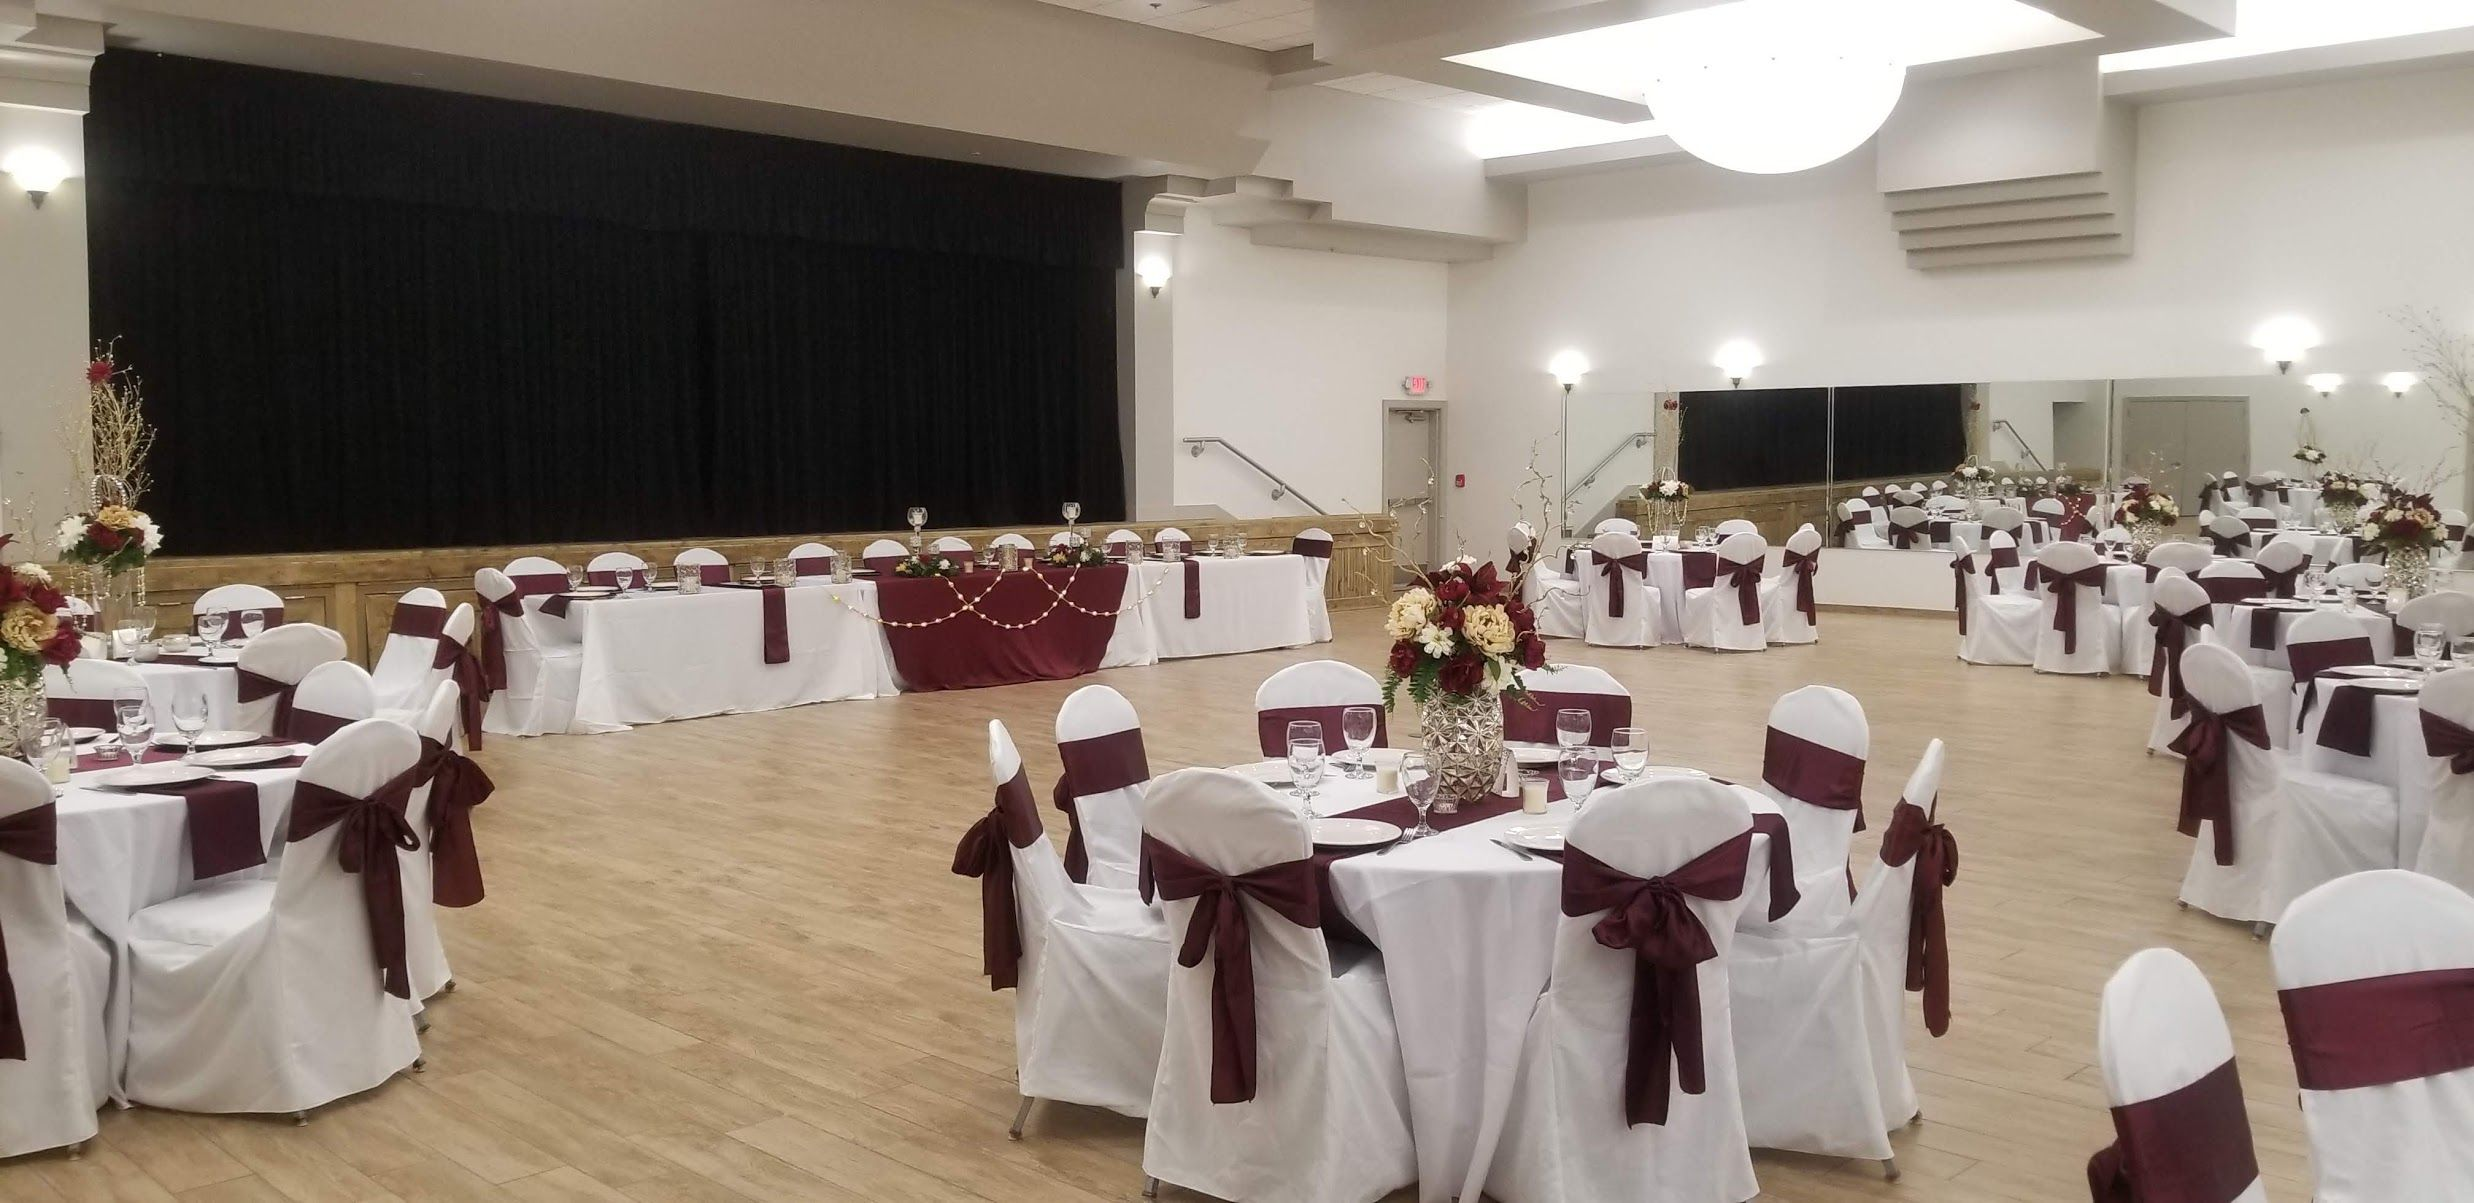 If You Are Looking For Your Perfect Wedding Venue Then